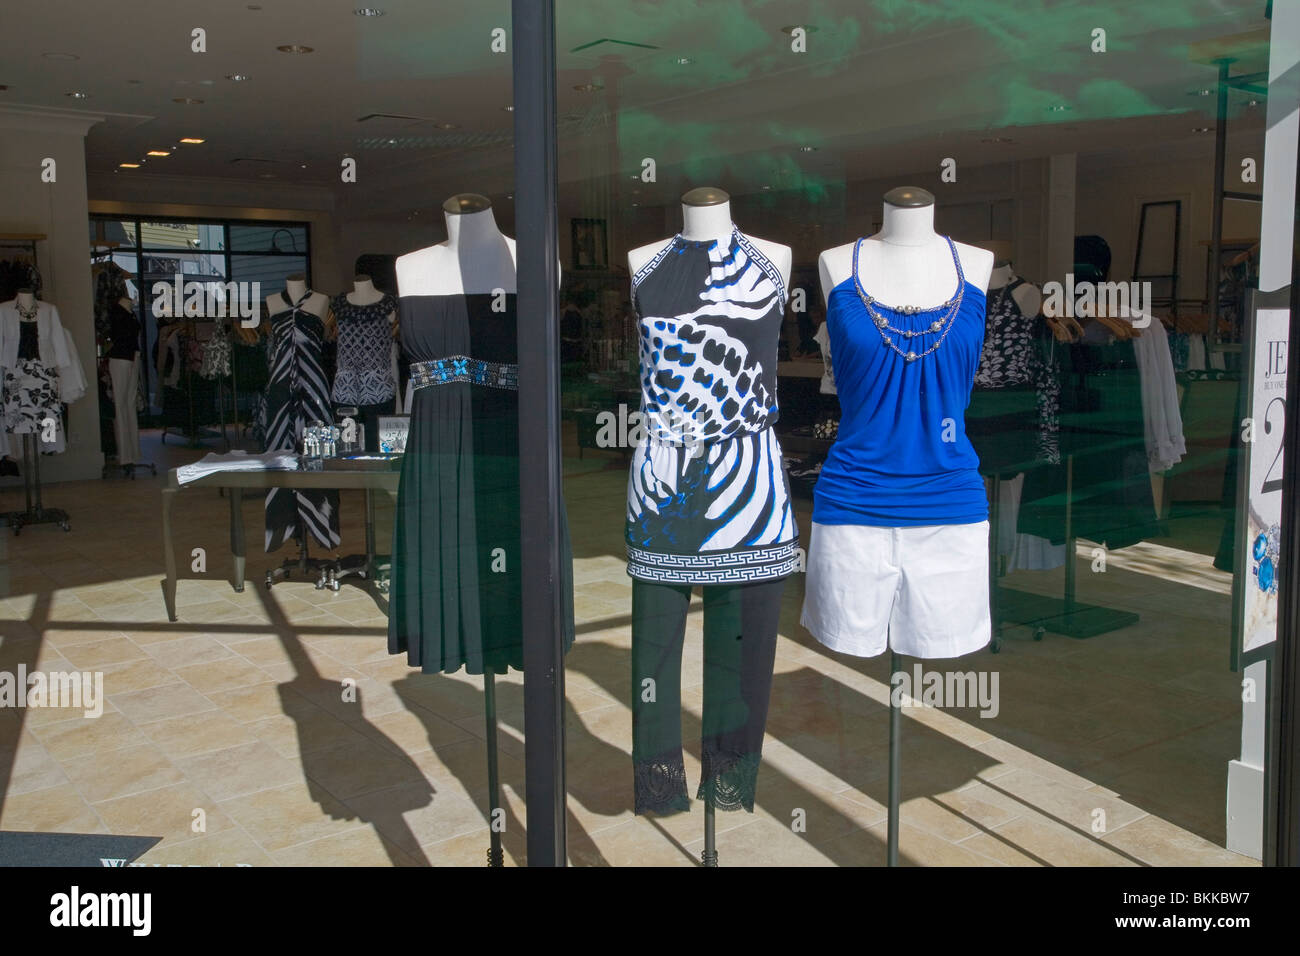 Mannequins in a store shop window in a large western shopping mall - Stock Image